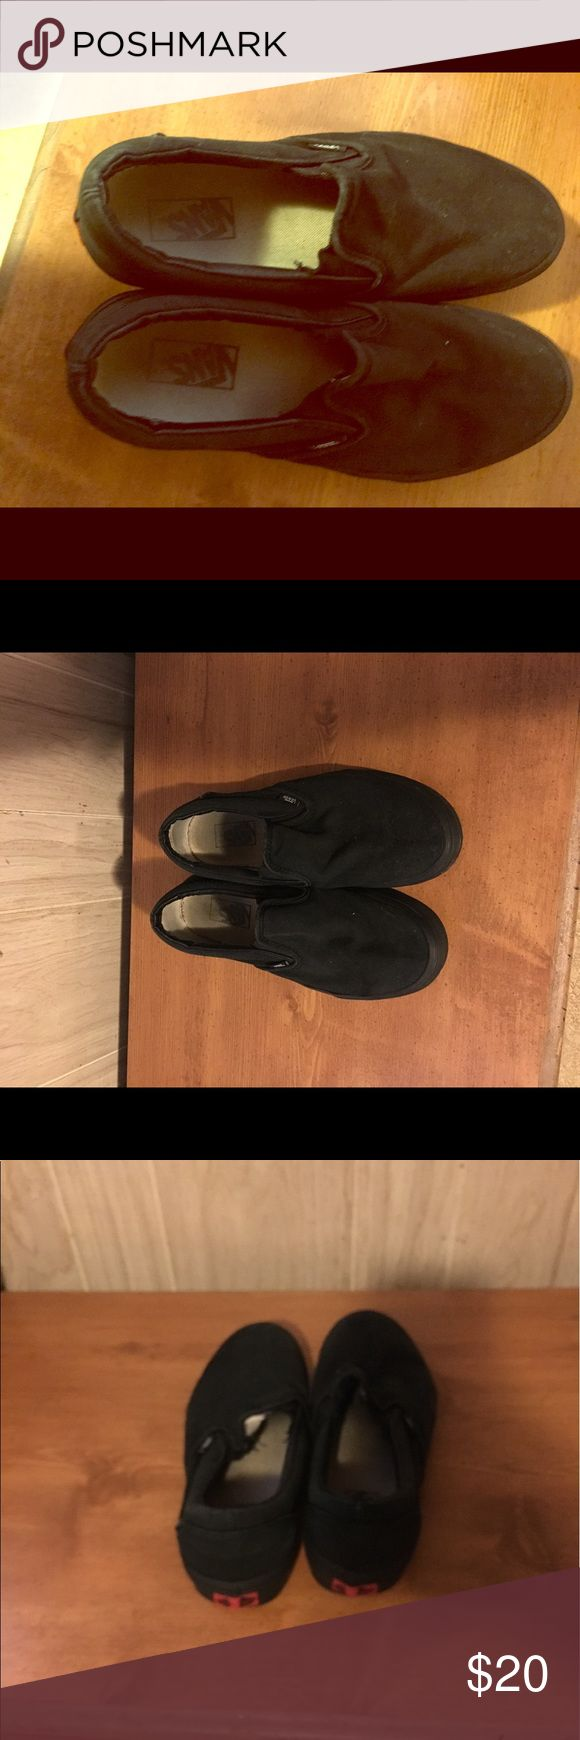 Vans slip on, black, size 10 Vans slip on shoes, black. Size 10. Gently used. Soles are worn, as can be seen in the pictures. May have some scuffs, so please be aware of that prior to purchasing! Bundle to save! Vans Shoes Flats & Loafers